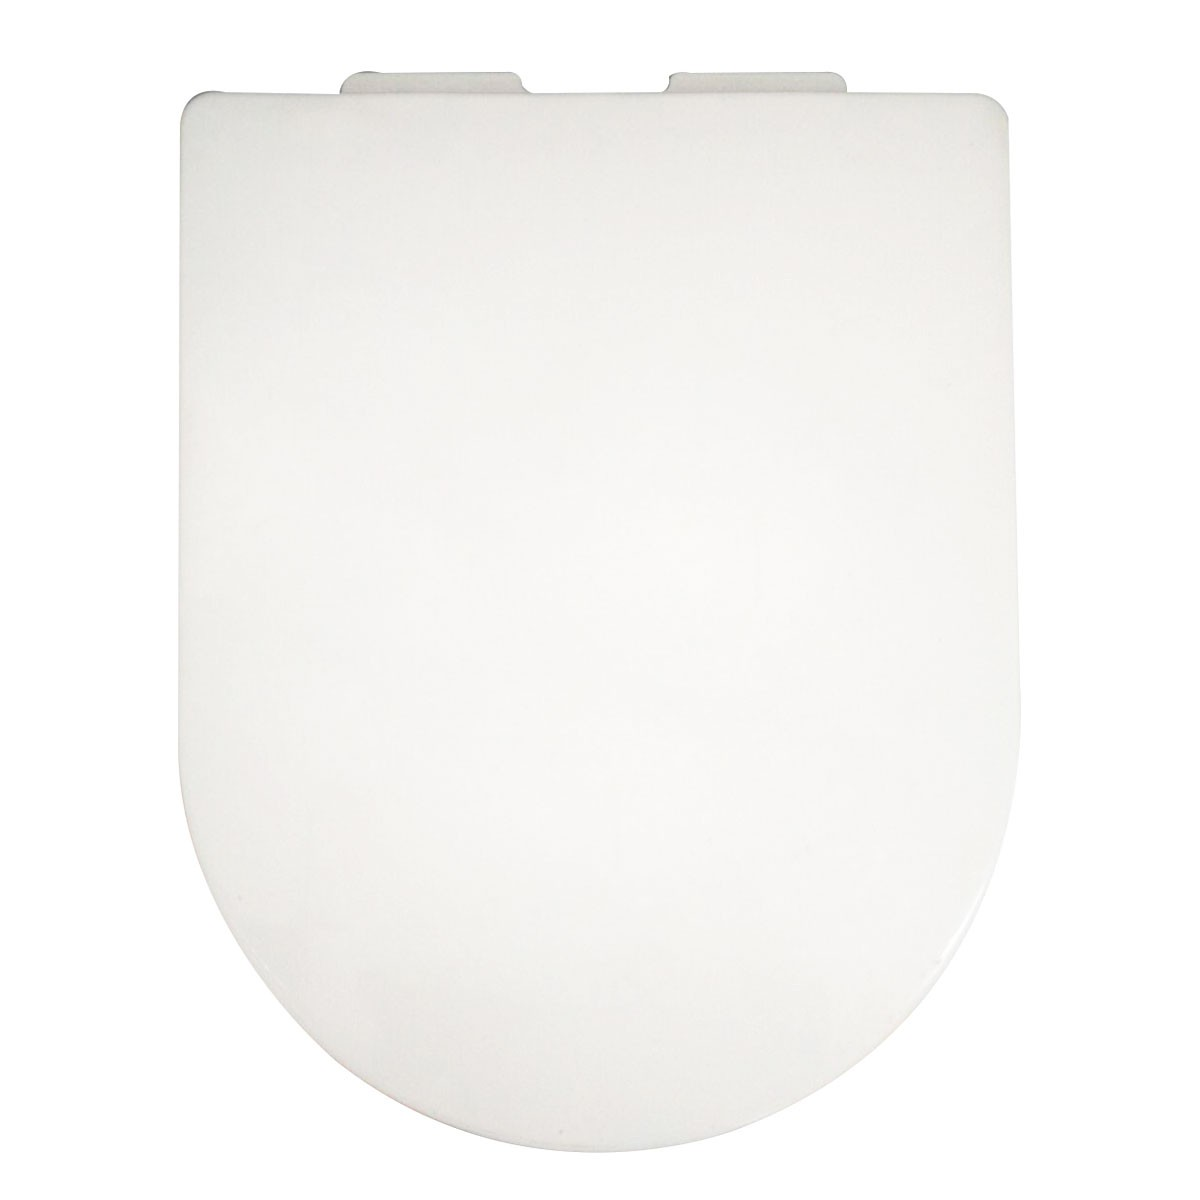 PP White Front Round Soft Close Toilet Seat with Cover (DK-CL-031)